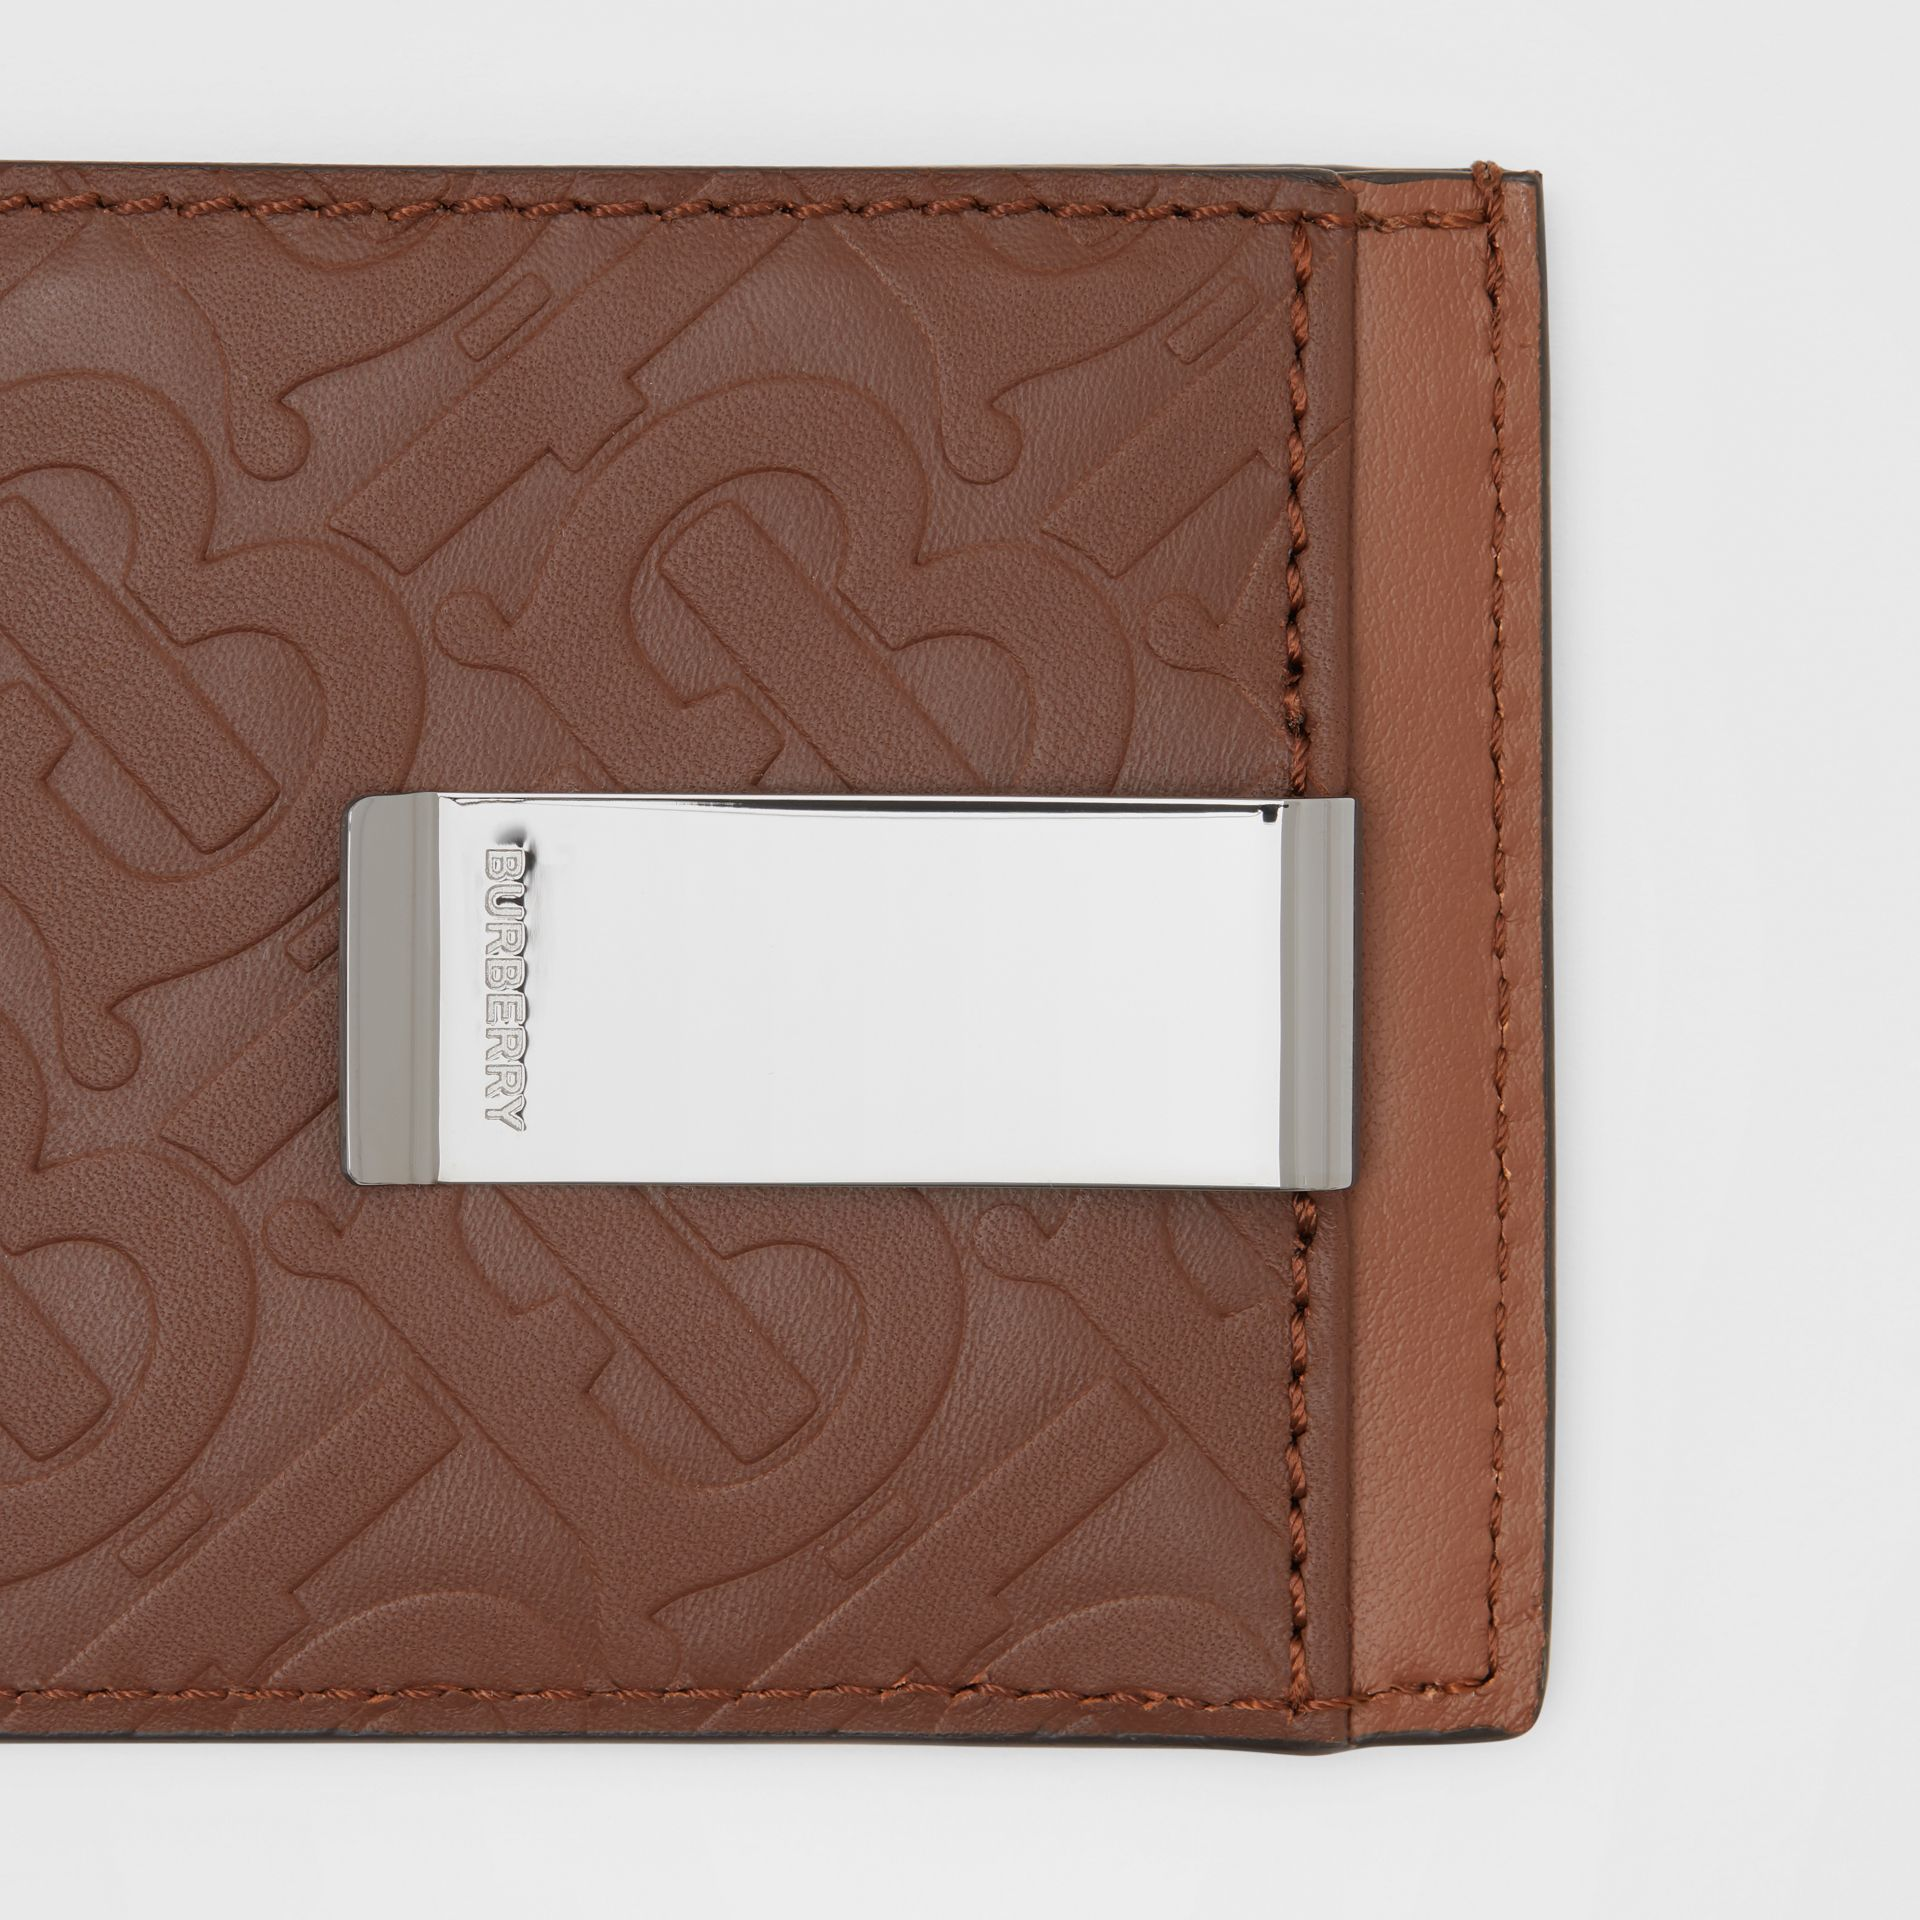 Monogram Leather Money Clip Card Case in Dark Tan - Men | Burberry United States - gallery image 1